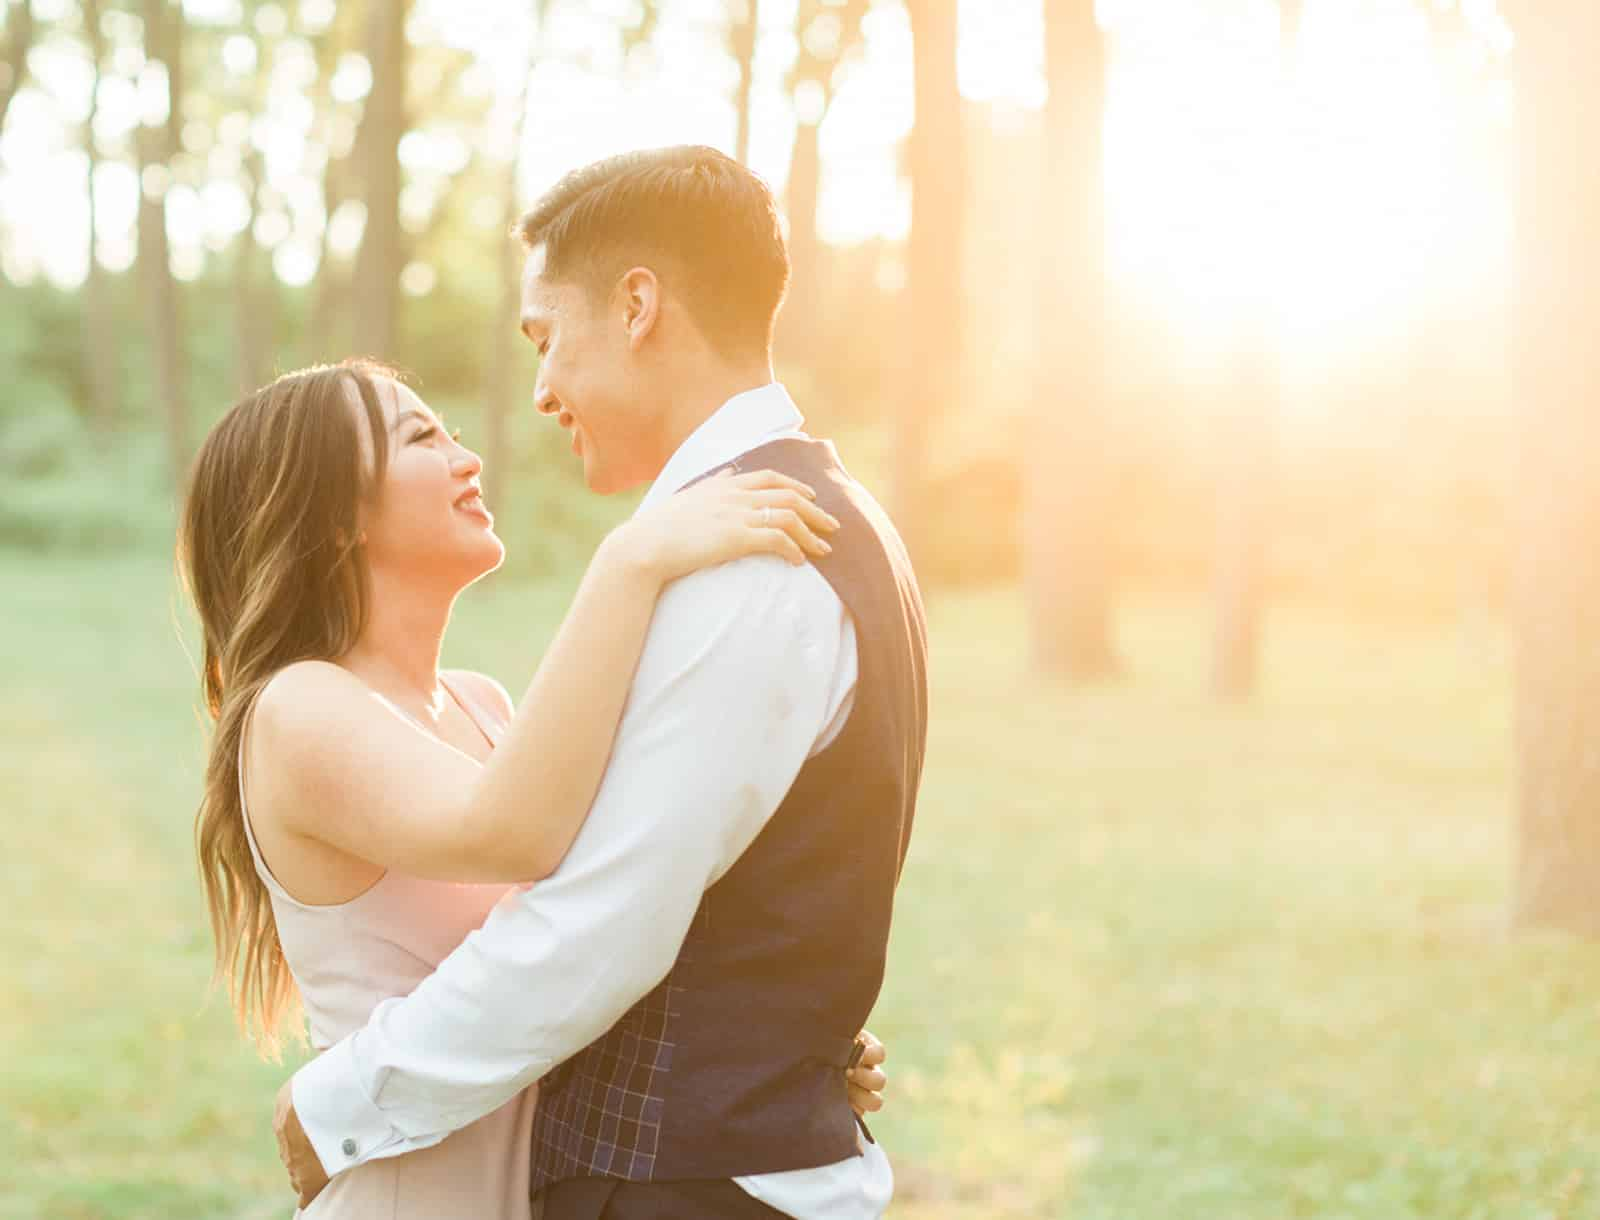 Romantic Summer Engagement in Toronto: Vivian + Cameron